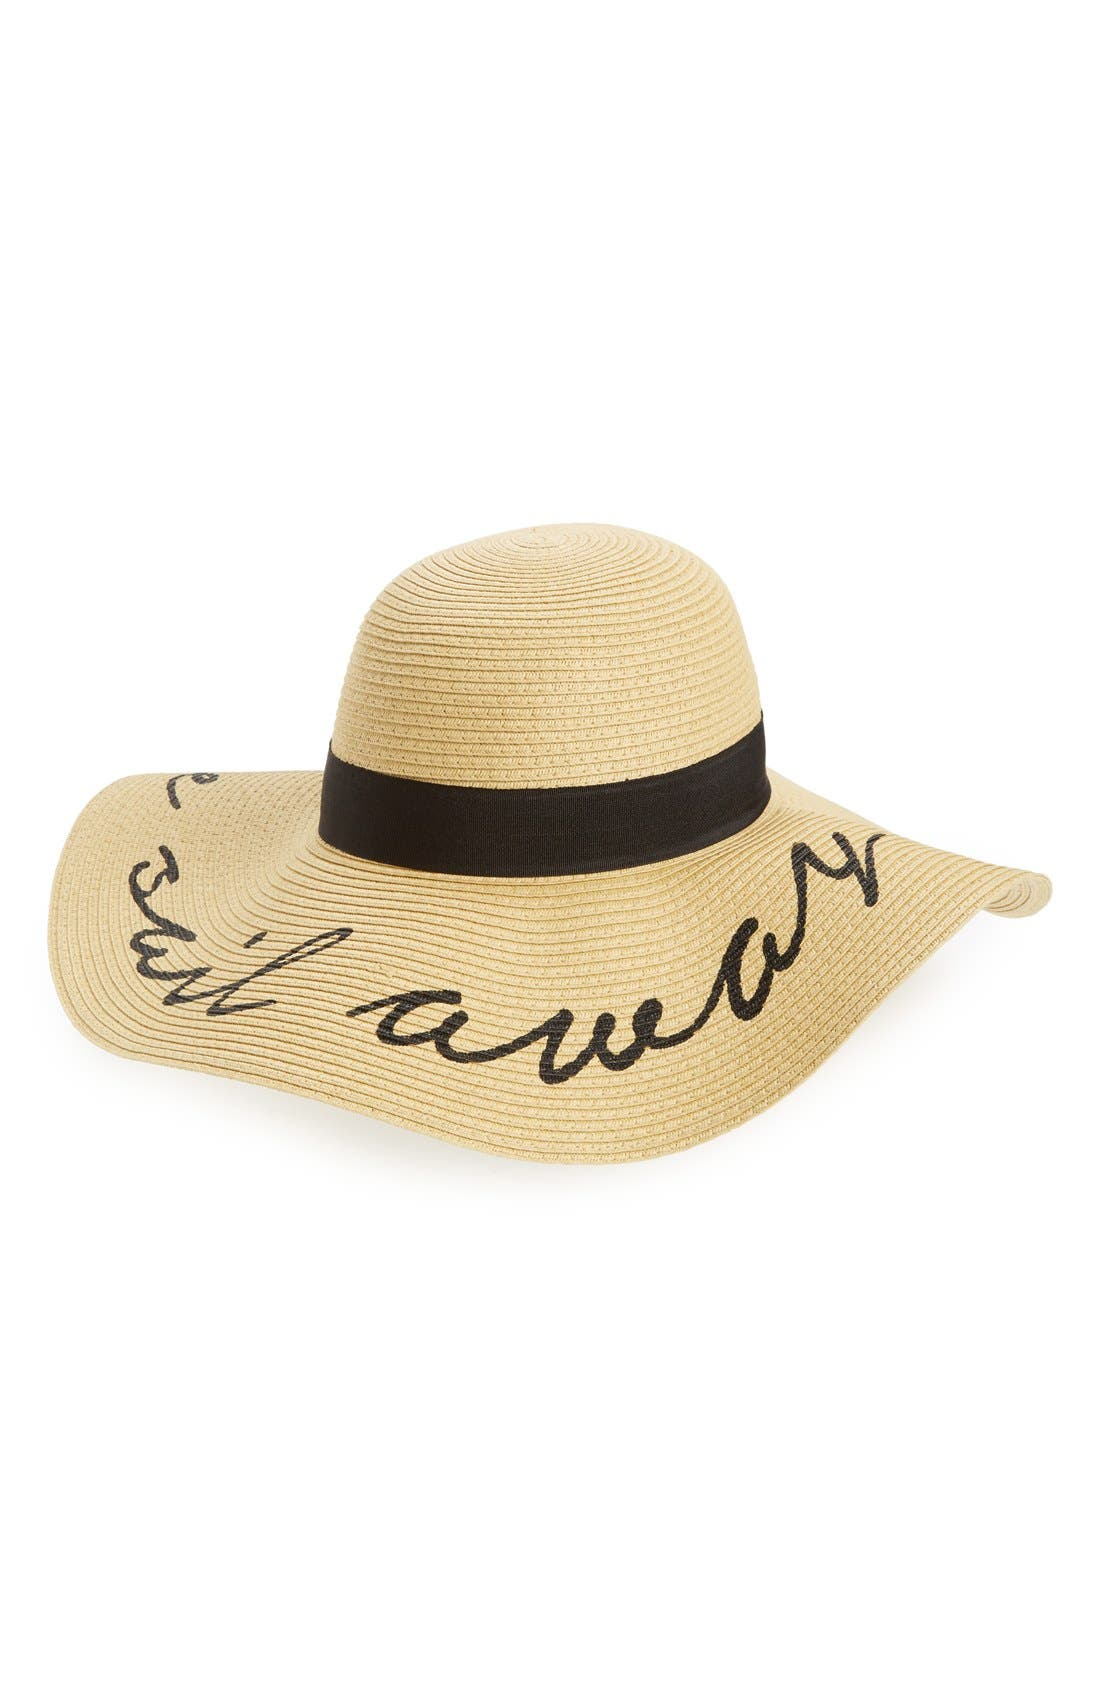 Main Image - BP. 'Come Sail Away' Floppy Straw Hat